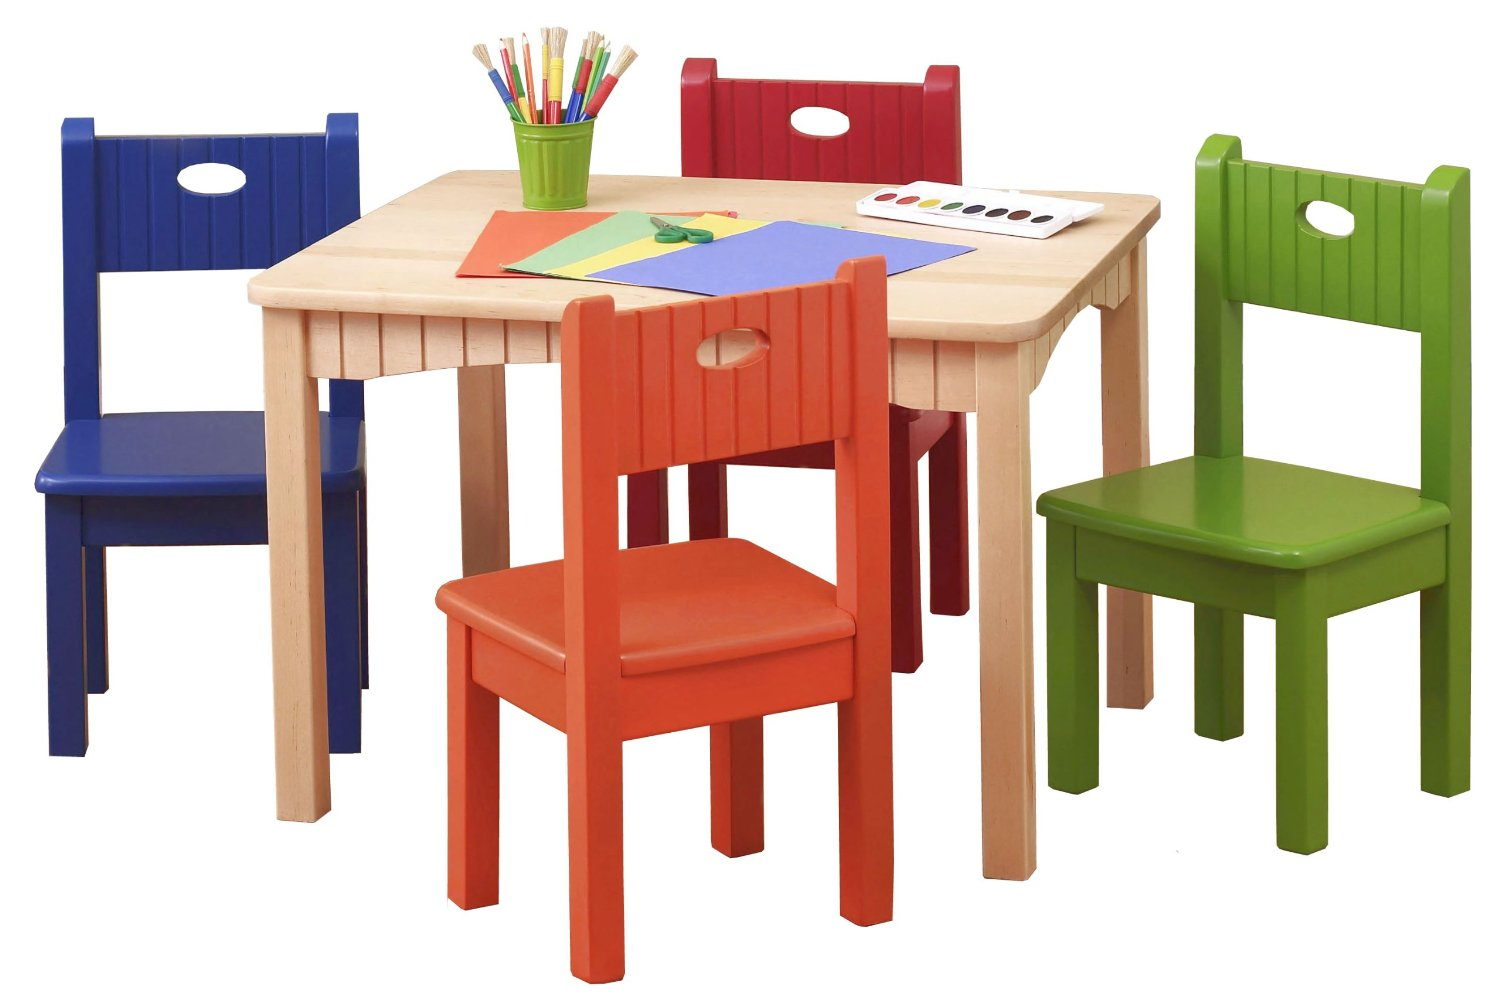 Pink Rectangular Table And Chair Set For Toddlers With Colorful Color